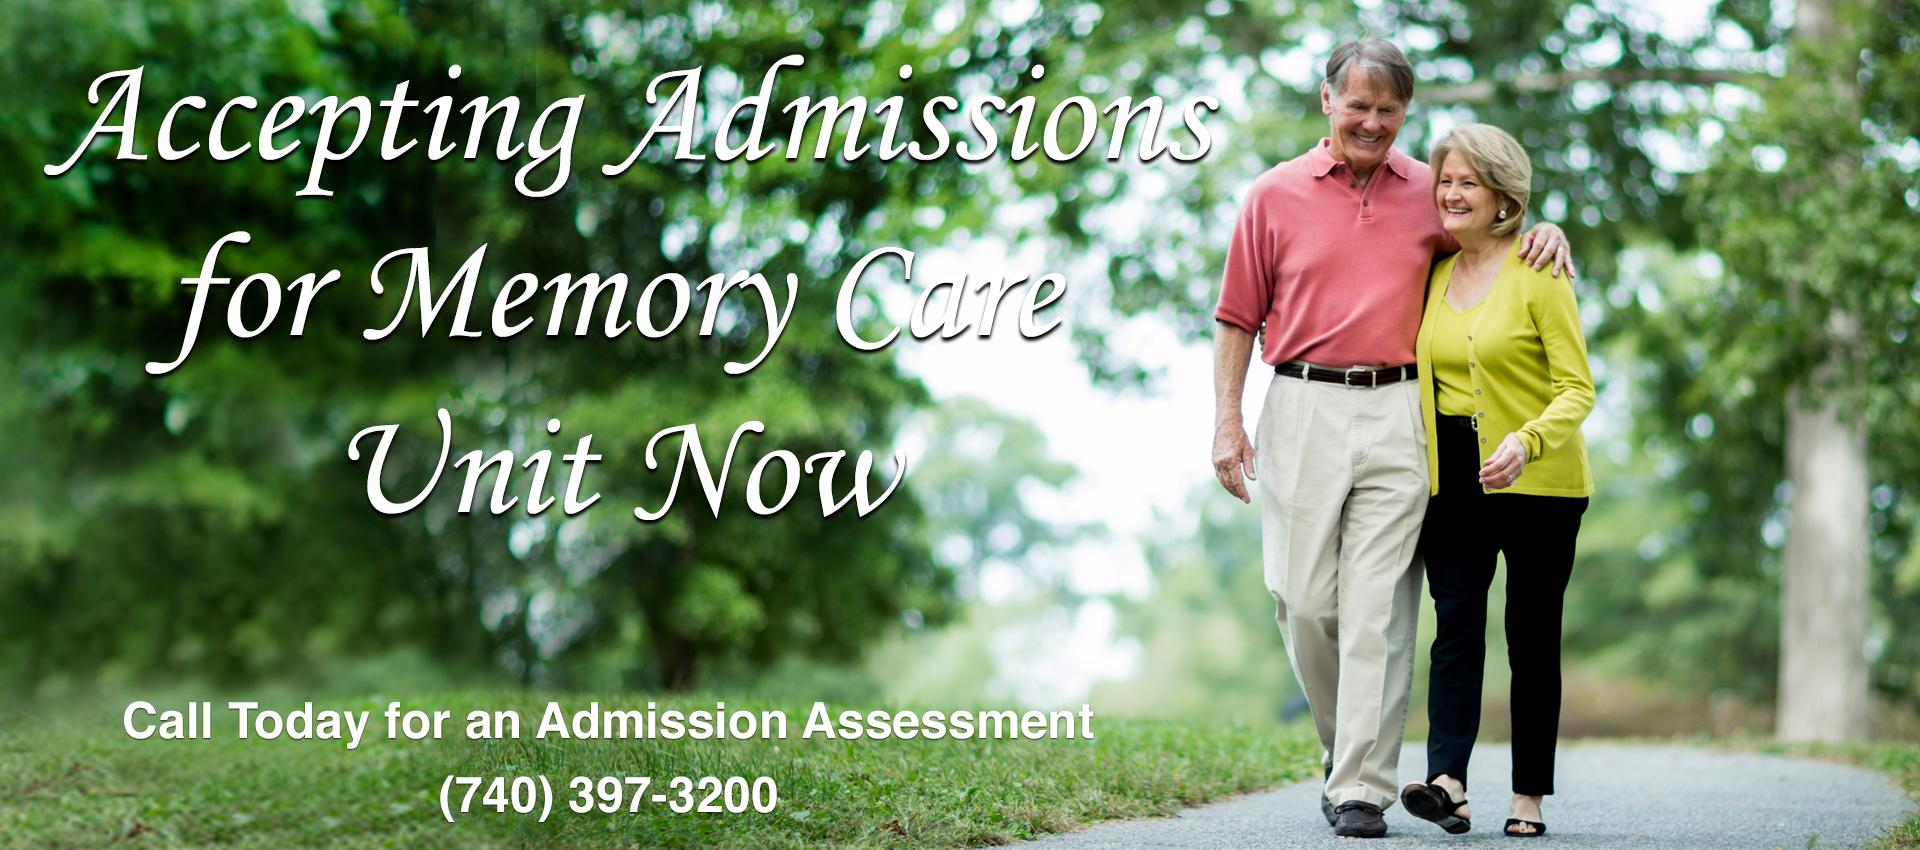 Accepting Admissions for Memory Care Unit Now